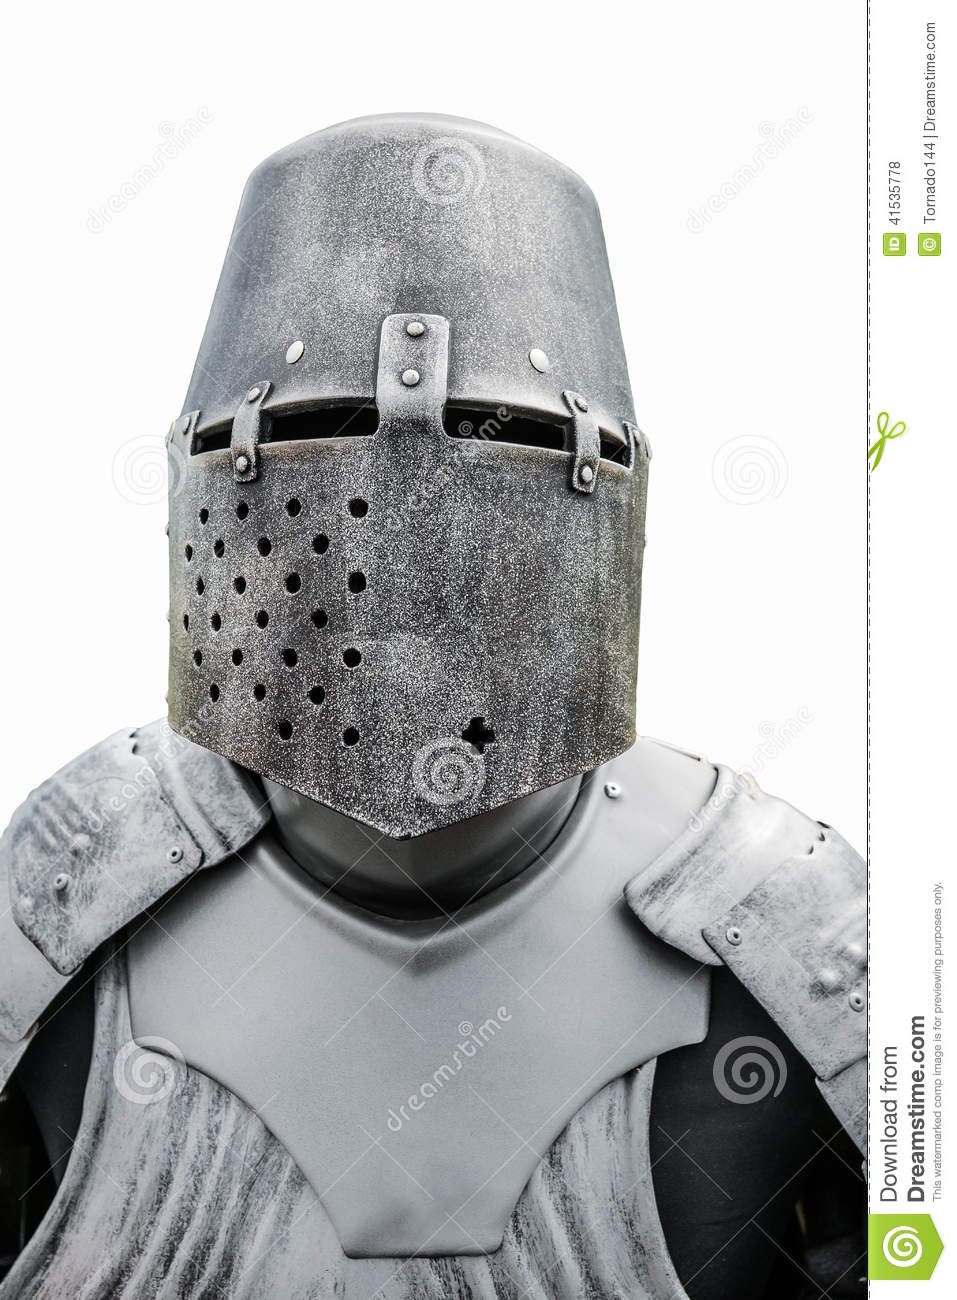 helmet and plate armor of the medieval knight stock photo